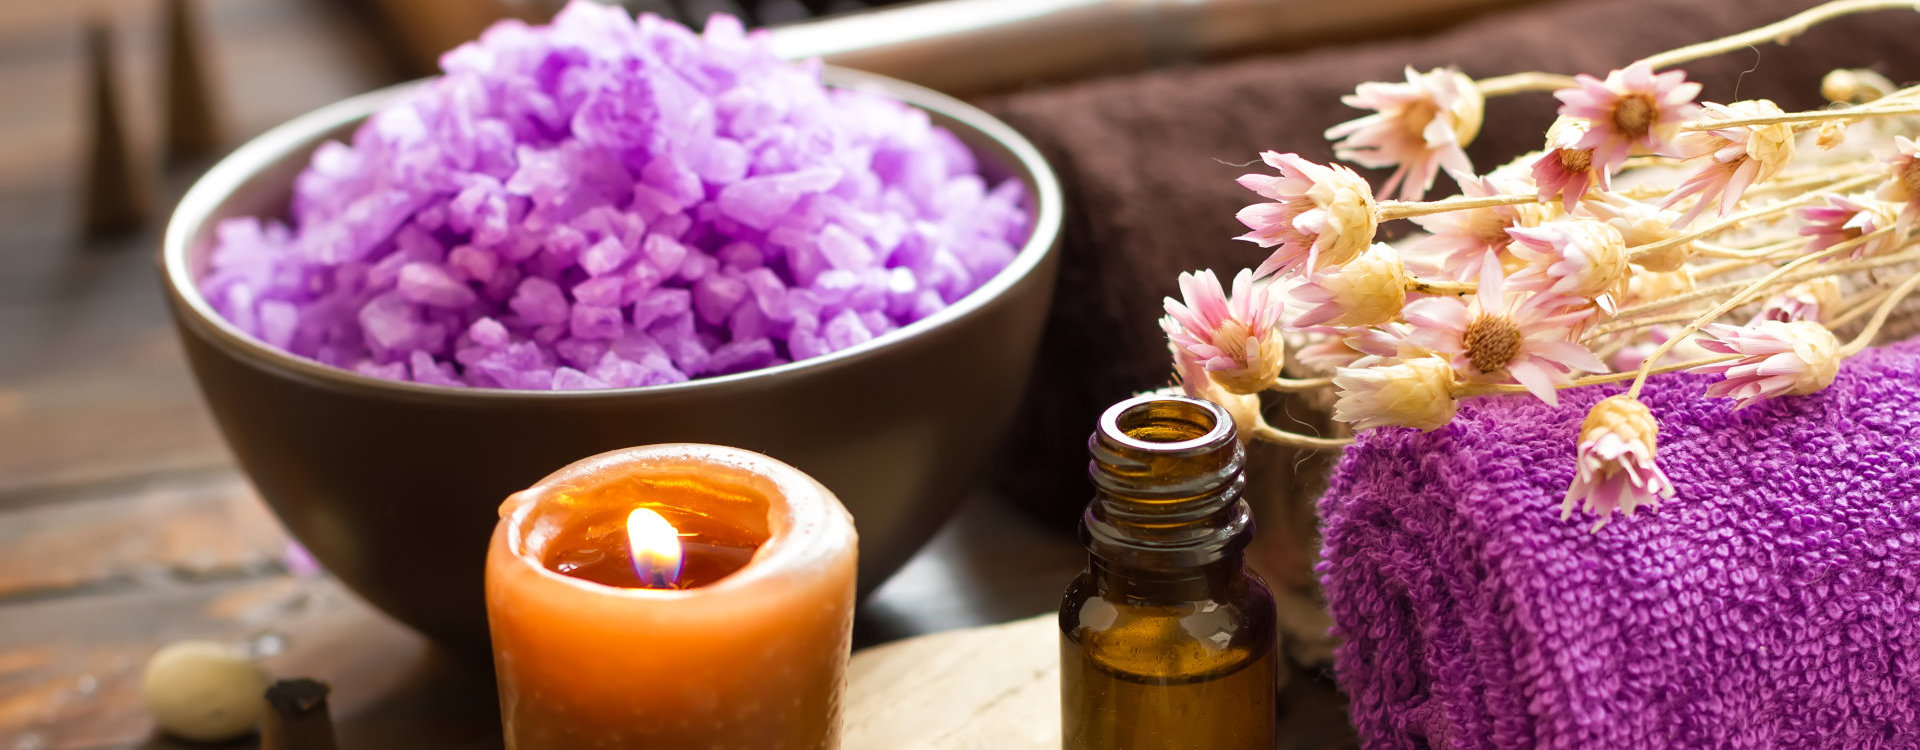 Spa. Aromatic, products.